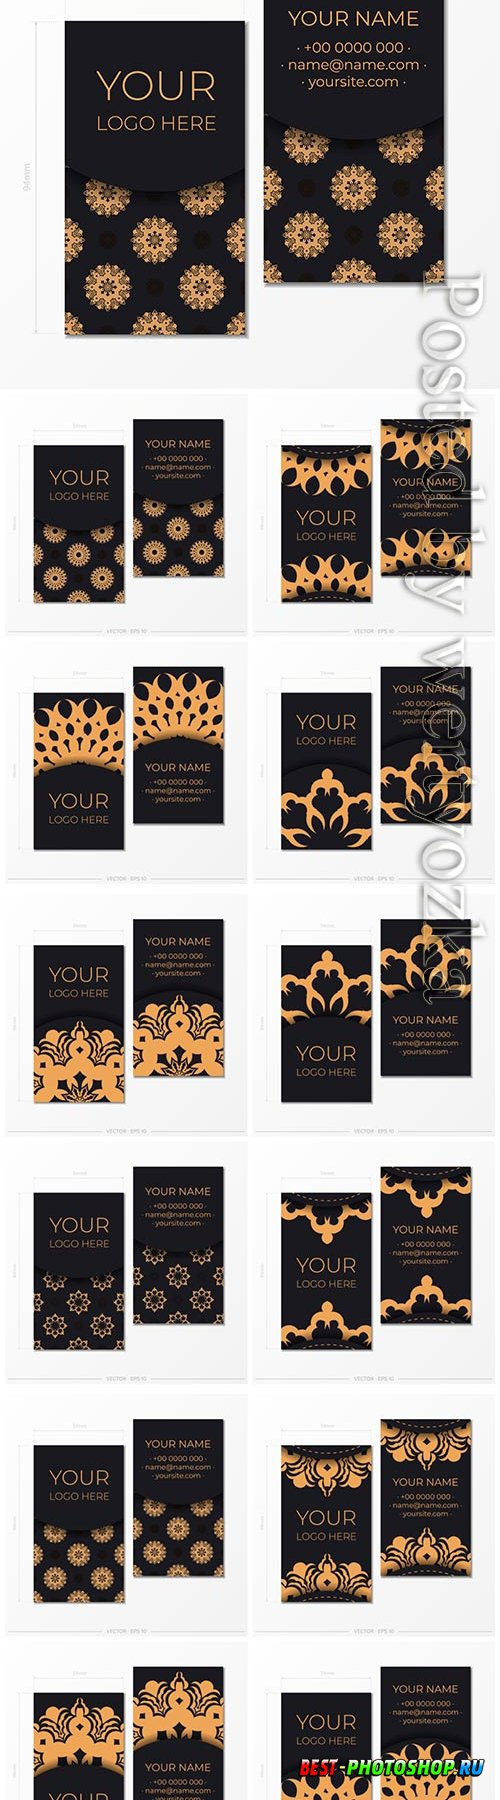 Business cards vector template with decorative oriental floral illustration